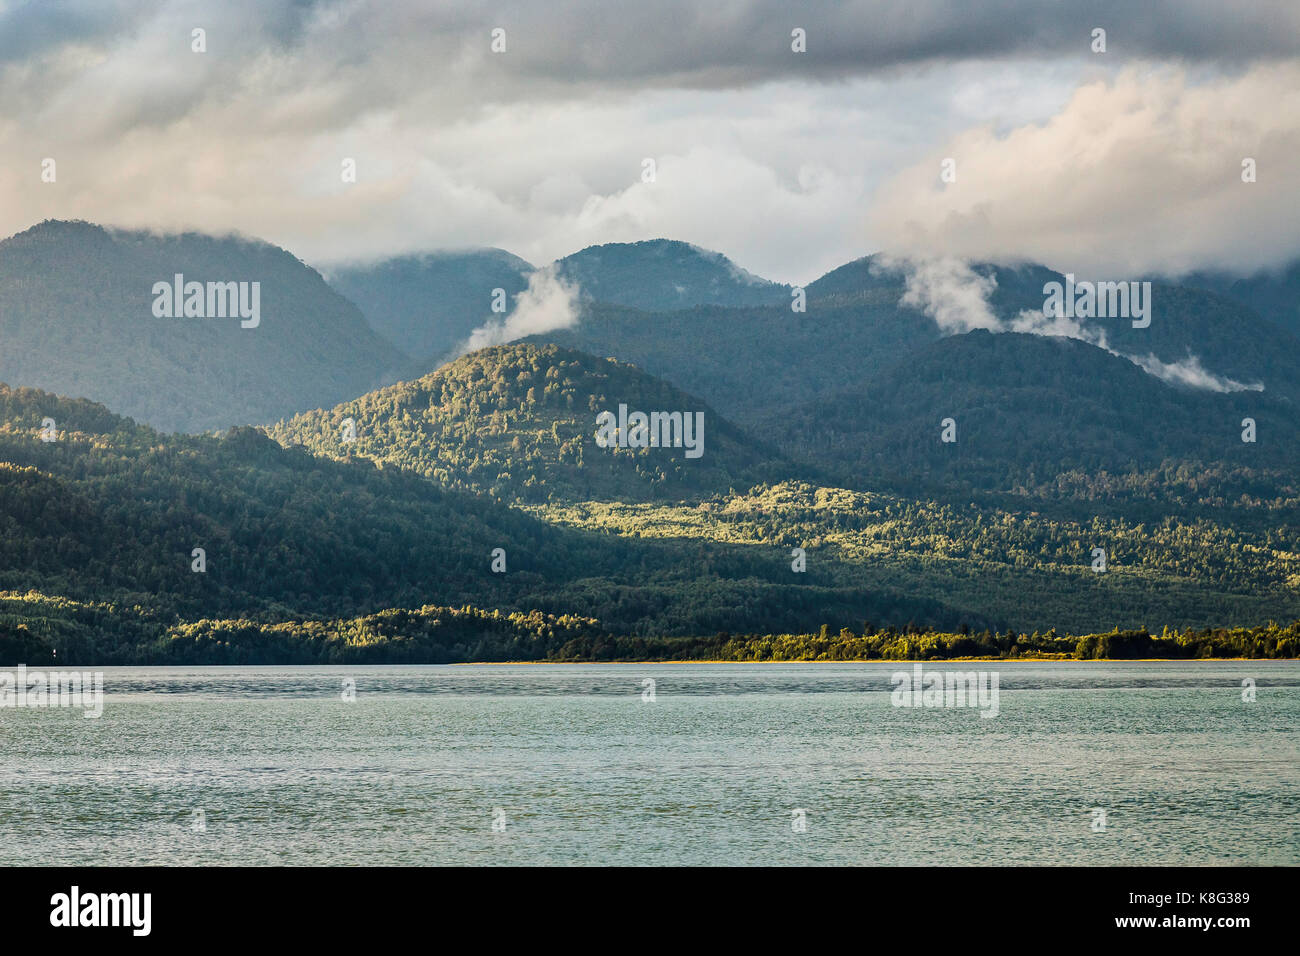 Mist rising from mountains over Lake Verde, Queulat National Park, Chile - Stock Image